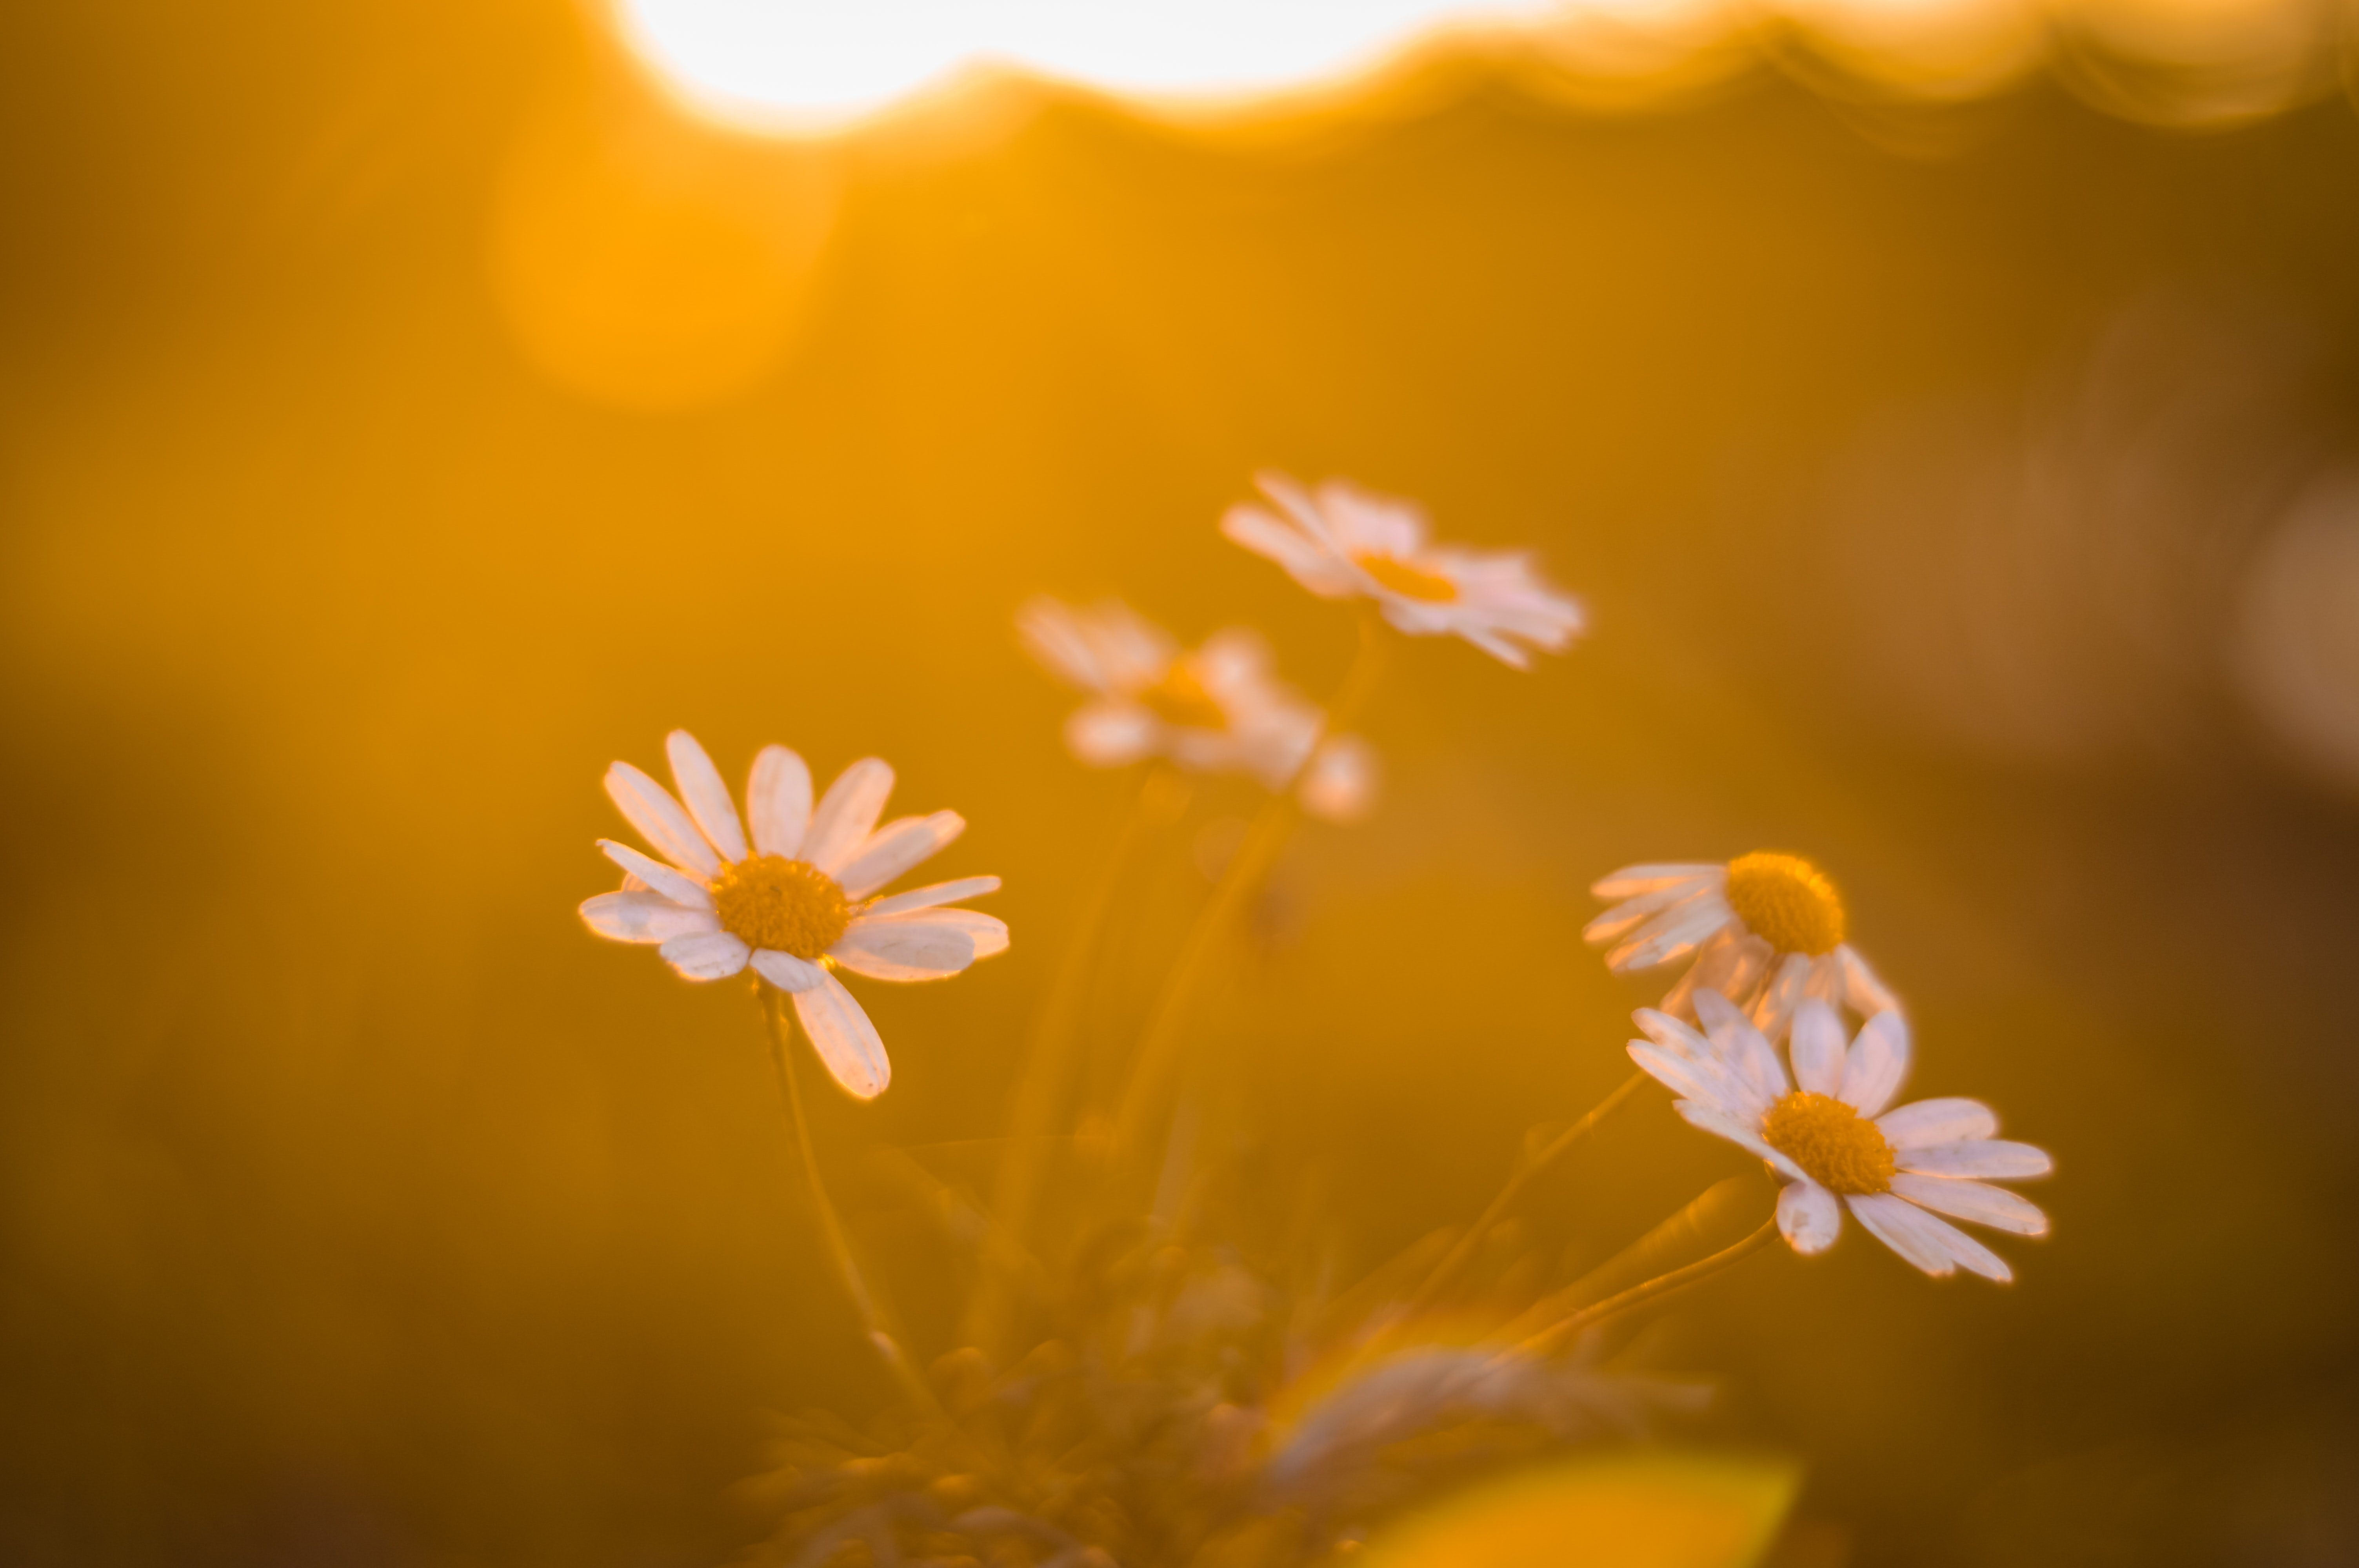 ox-eyed daisy during golden hour